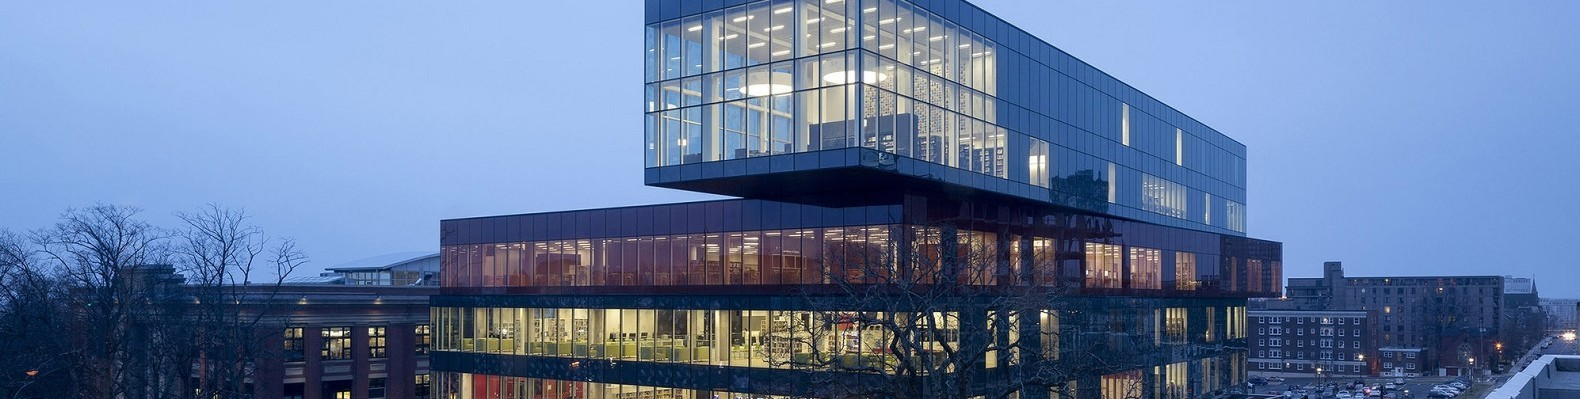 Halifax Central Library by Schmidt Hammer Lassen Architects 1 1580x399